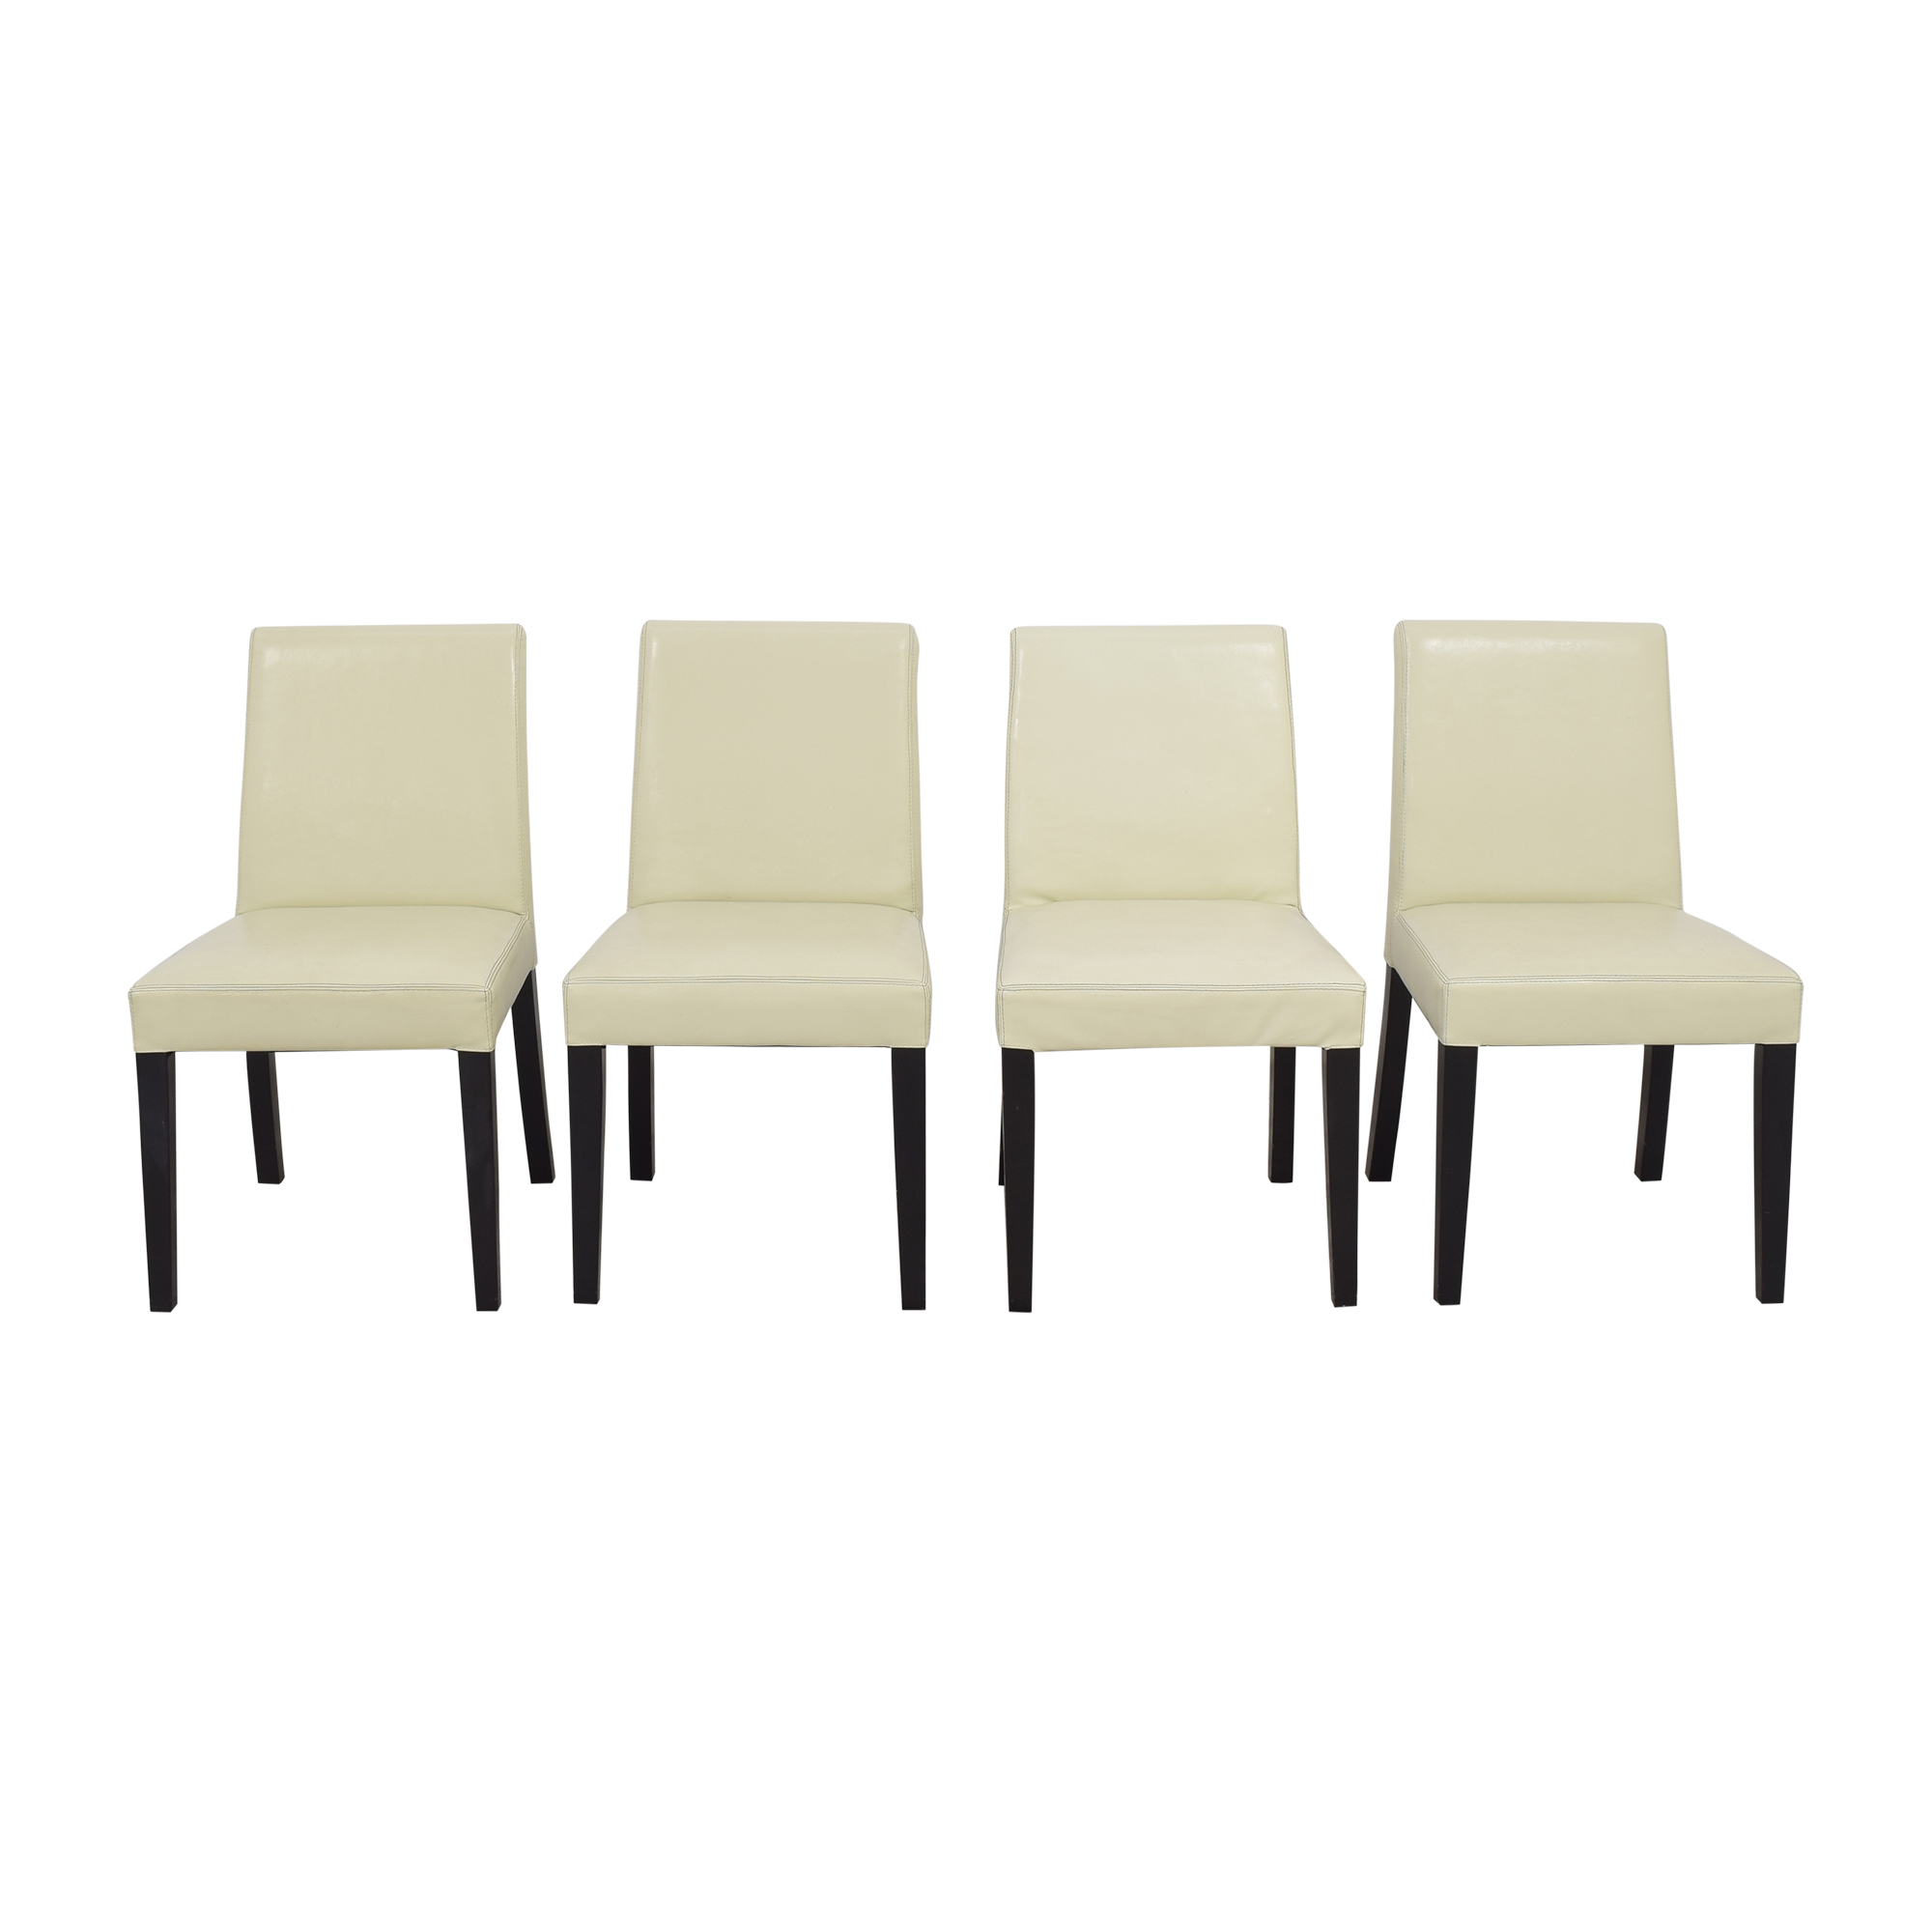 Crate & Barrel Crate & Barrel Pullman Dining Chairs ma